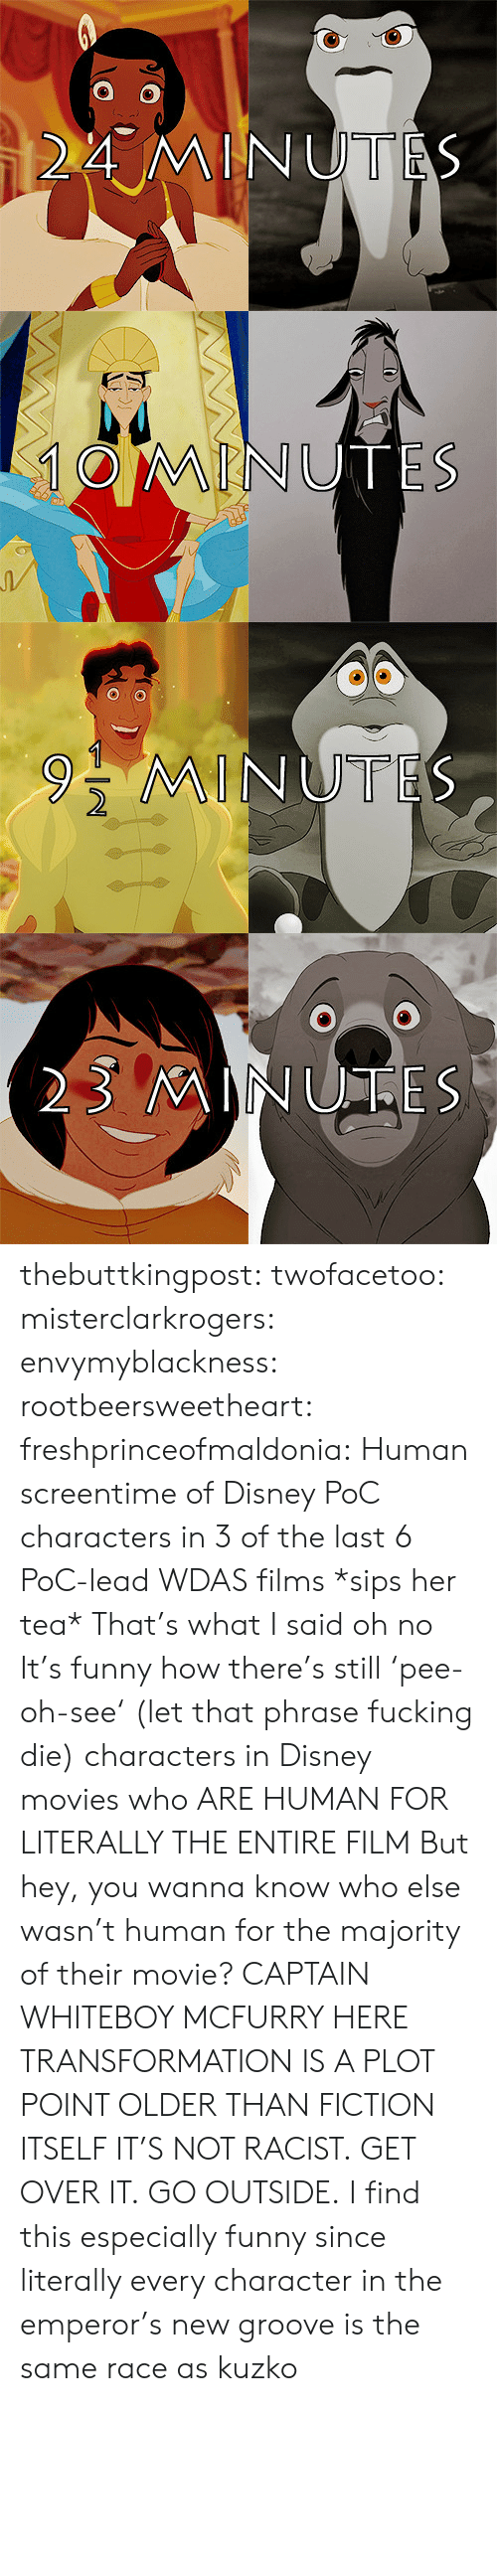 New Groove: 24 MINUTES thebuttkingpost:  twofacetoo:  misterclarkrogers:  envymyblackness:  rootbeersweetheart:  freshprinceofmaldonia:  Human screentime of Disney PoC characters in 3 of the last 6 PoC-lead WDAS films  *sips her tea*  That's what I said  oh no  It's funny how there's still 'pee-oh-see' (let that phrase fucking die) characters in Disney movies who ARE HUMAN FOR LITERALLY THE ENTIRE FILM  But hey, you wanna know who else wasn't human for the majority of their movie? CAPTAIN WHITEBOY MCFURRY HERE TRANSFORMATION IS A PLOT POINT OLDER THAN FICTION ITSELF IT'S NOT RACIST. GET OVER IT.  GO OUTSIDE.  I find this especially funny since literally every character in the emperor's new groove is the same race as kuzko